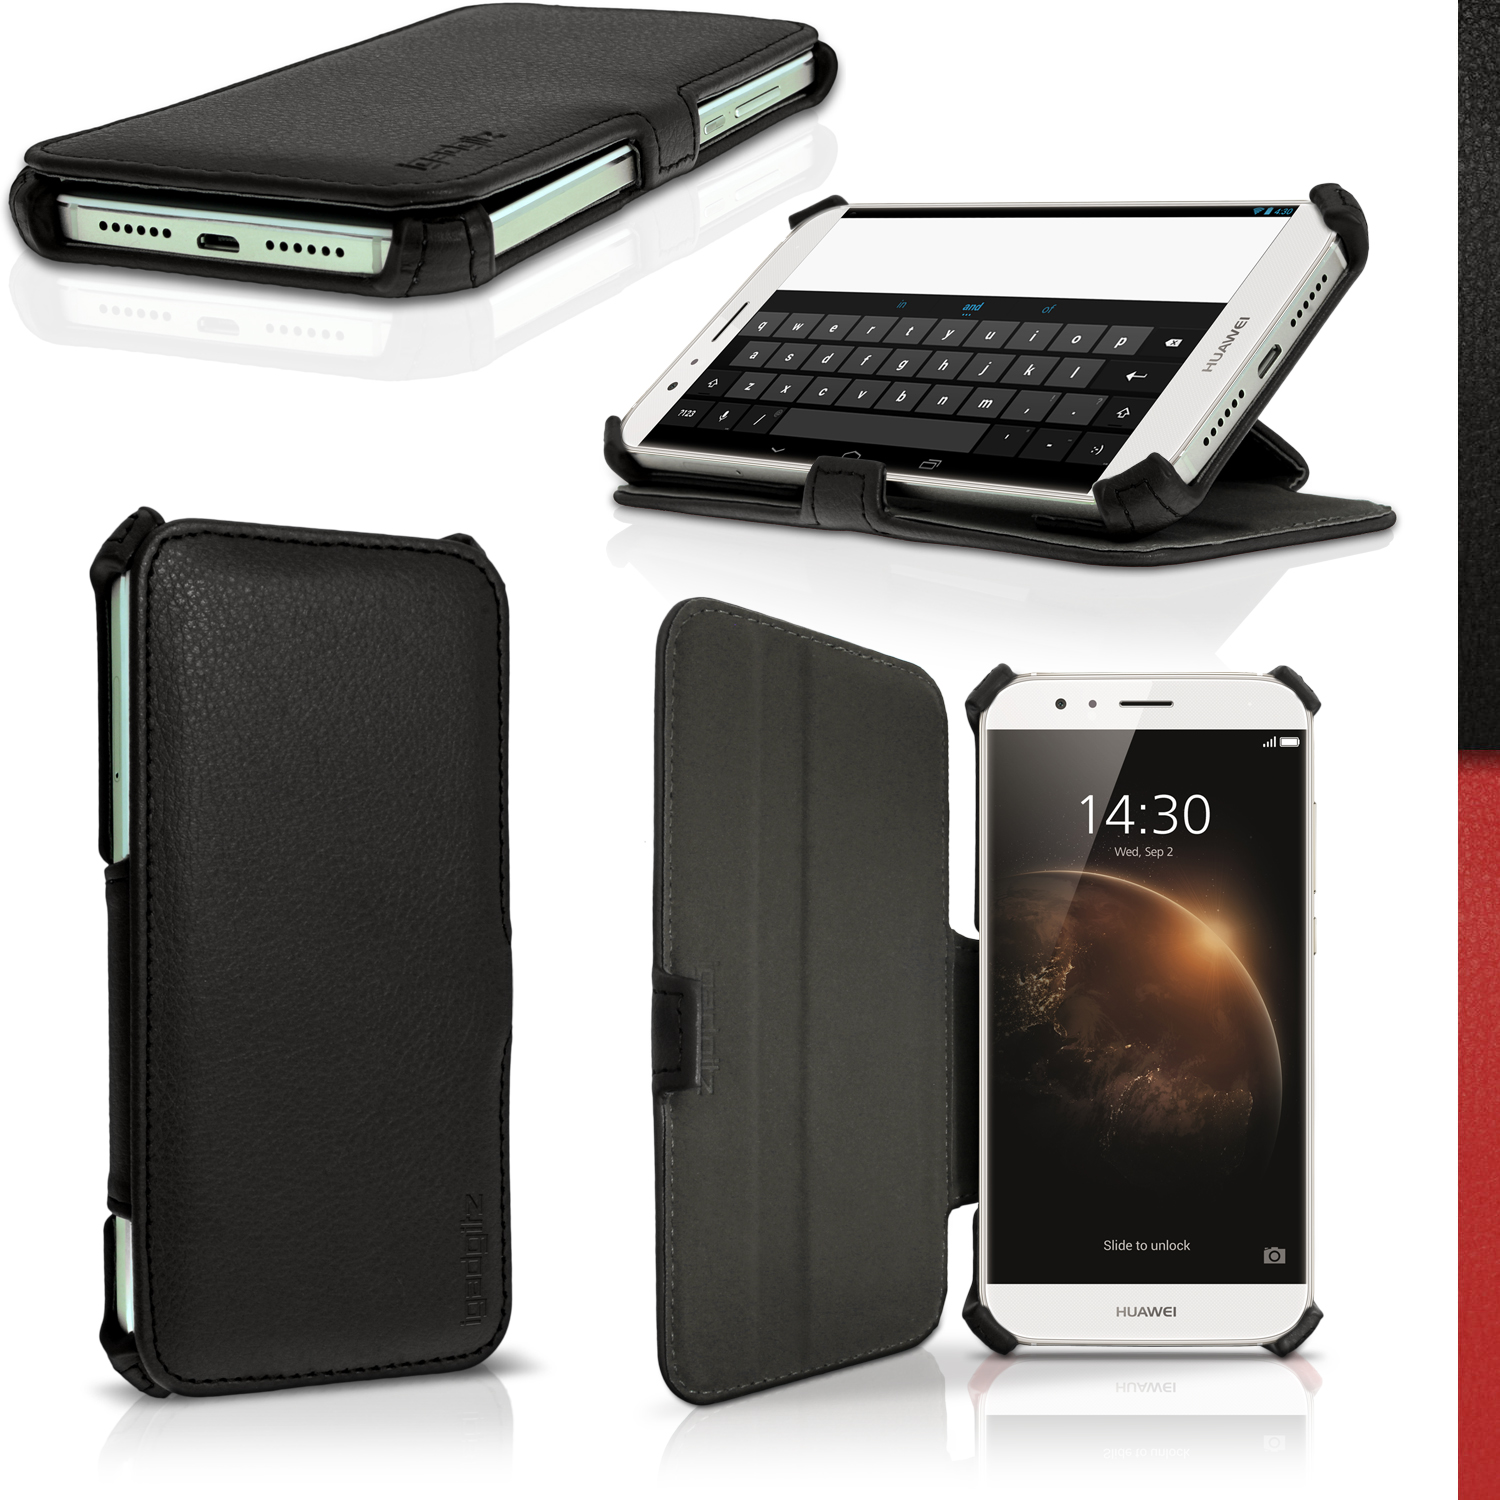 Details about PU Leather Flip Case for Huawei G8 Stand Book Folio Cover +  Screen Protector